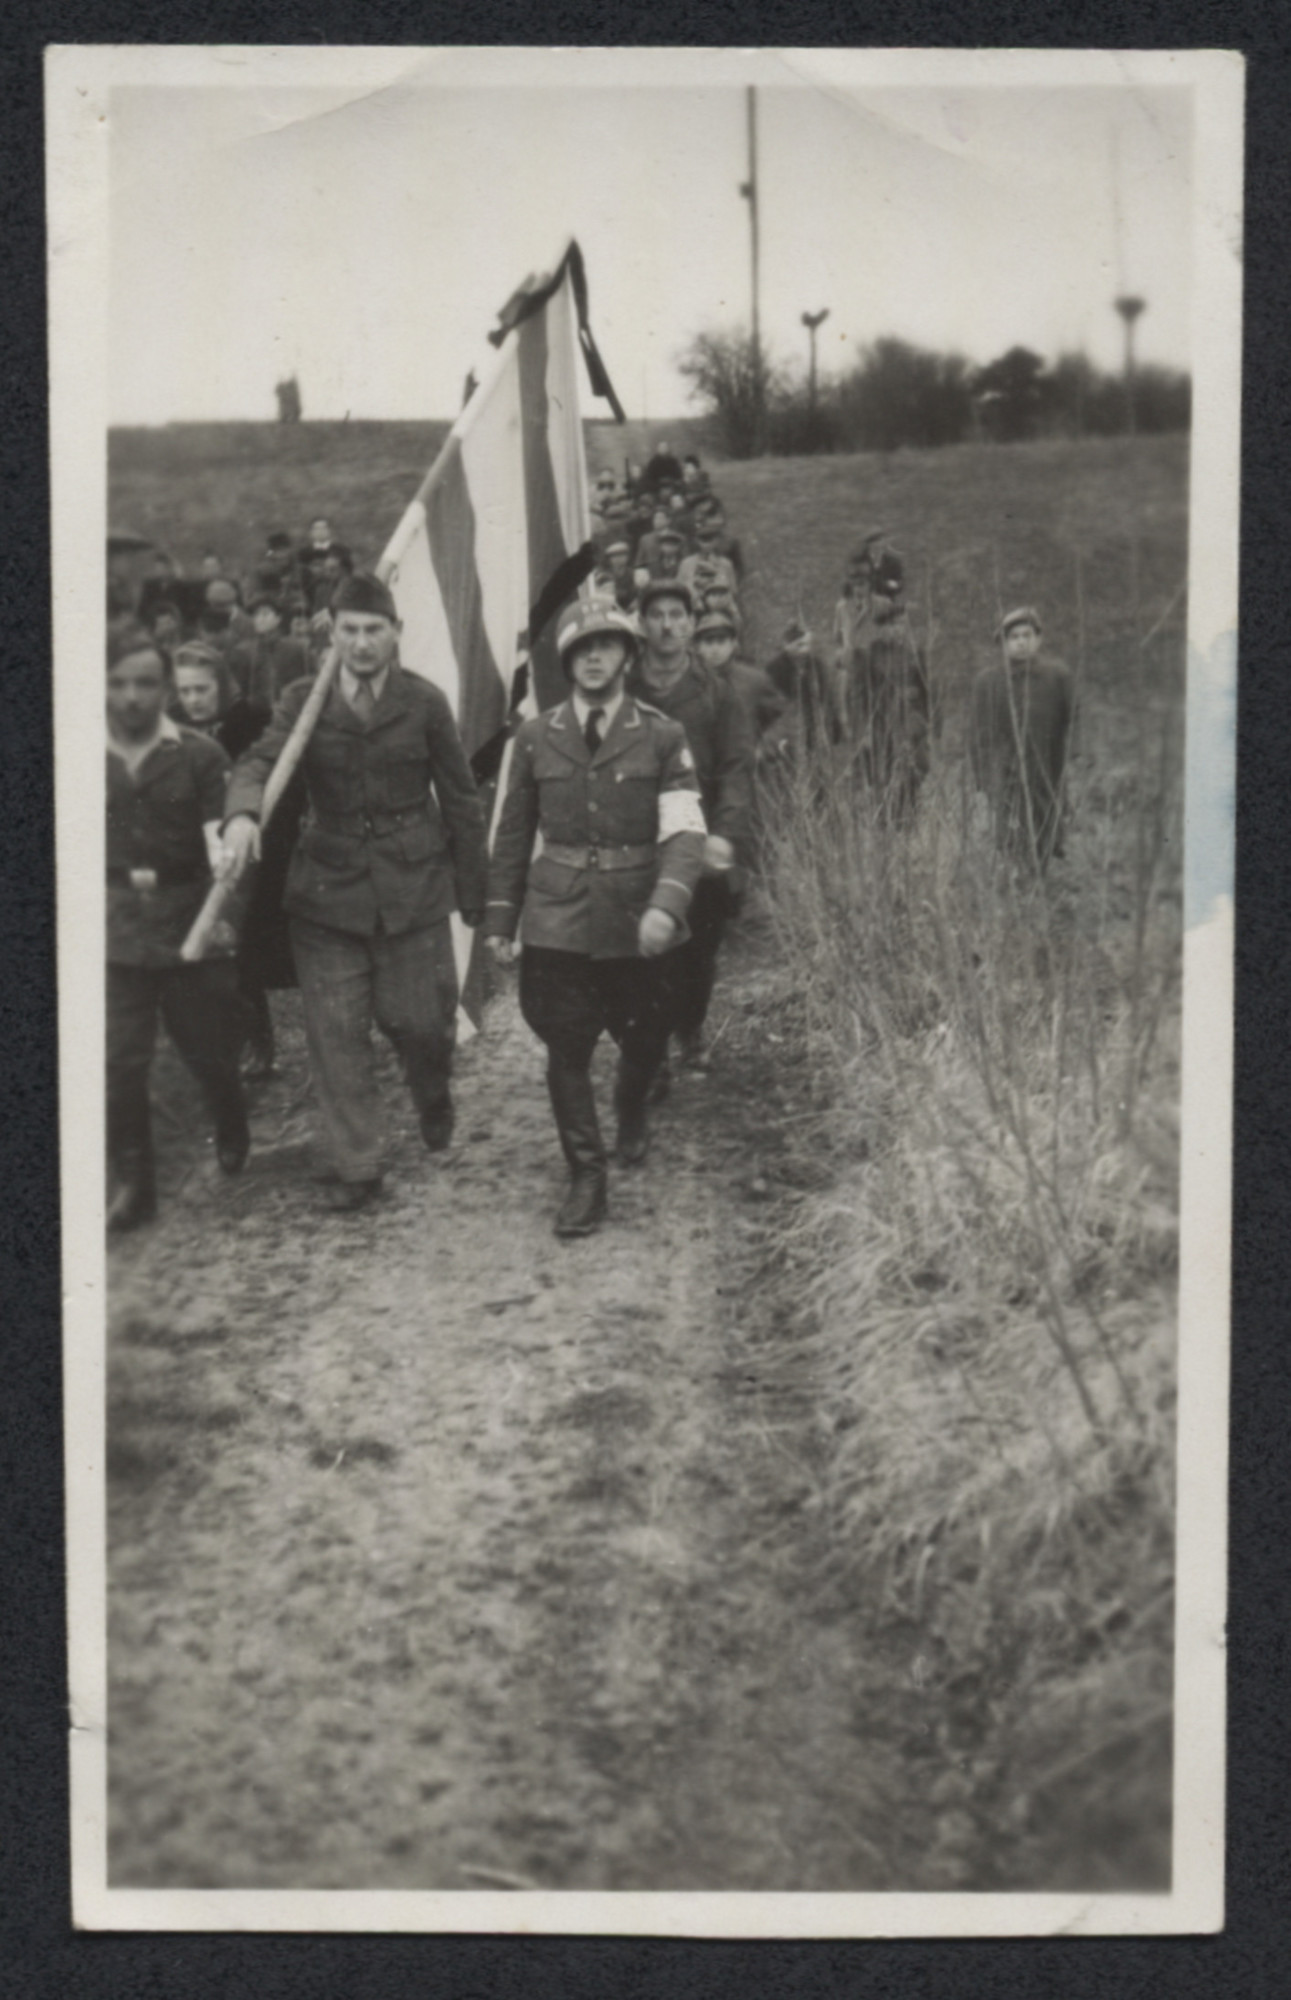 Displaced persons march carrying a flag or banner.